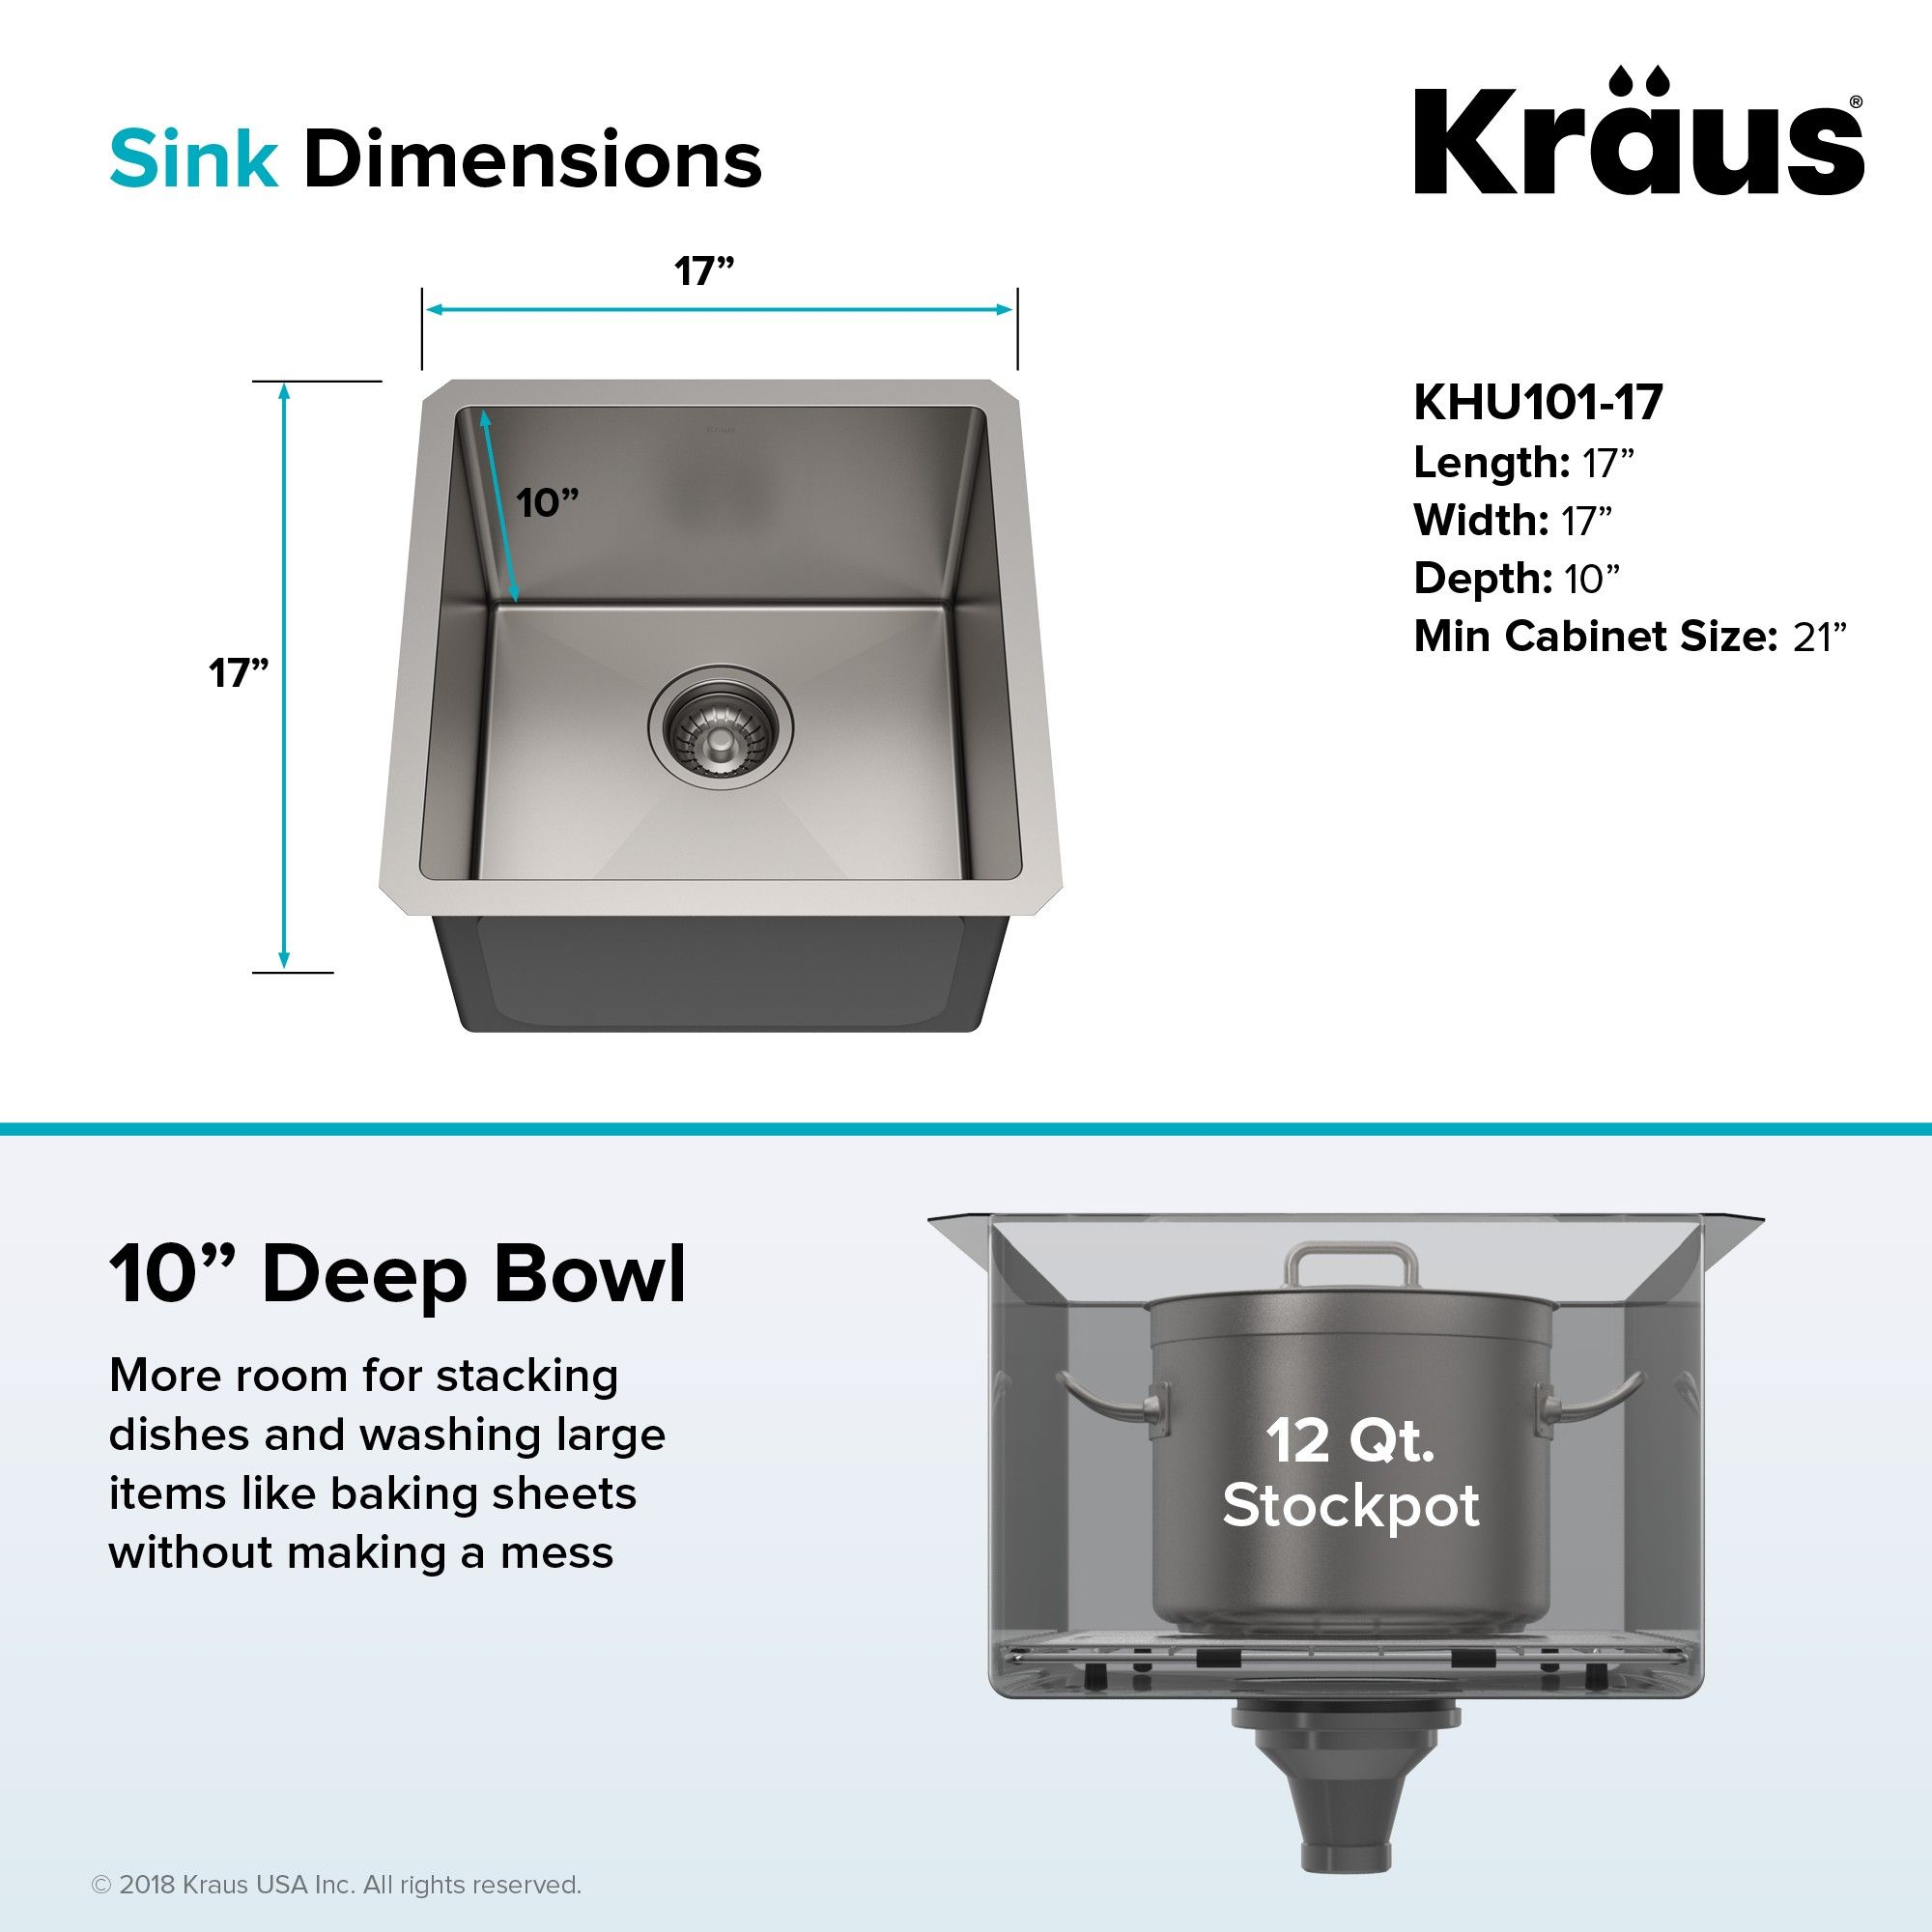 Kraus Standart Pro 17 Inch 16 Gauge Undermount Single Bowl Stainless Steel Kitchen Bar Sink Kraususa Kraus Stainless Steel Kitchen Single Bowl Kitchen Sink